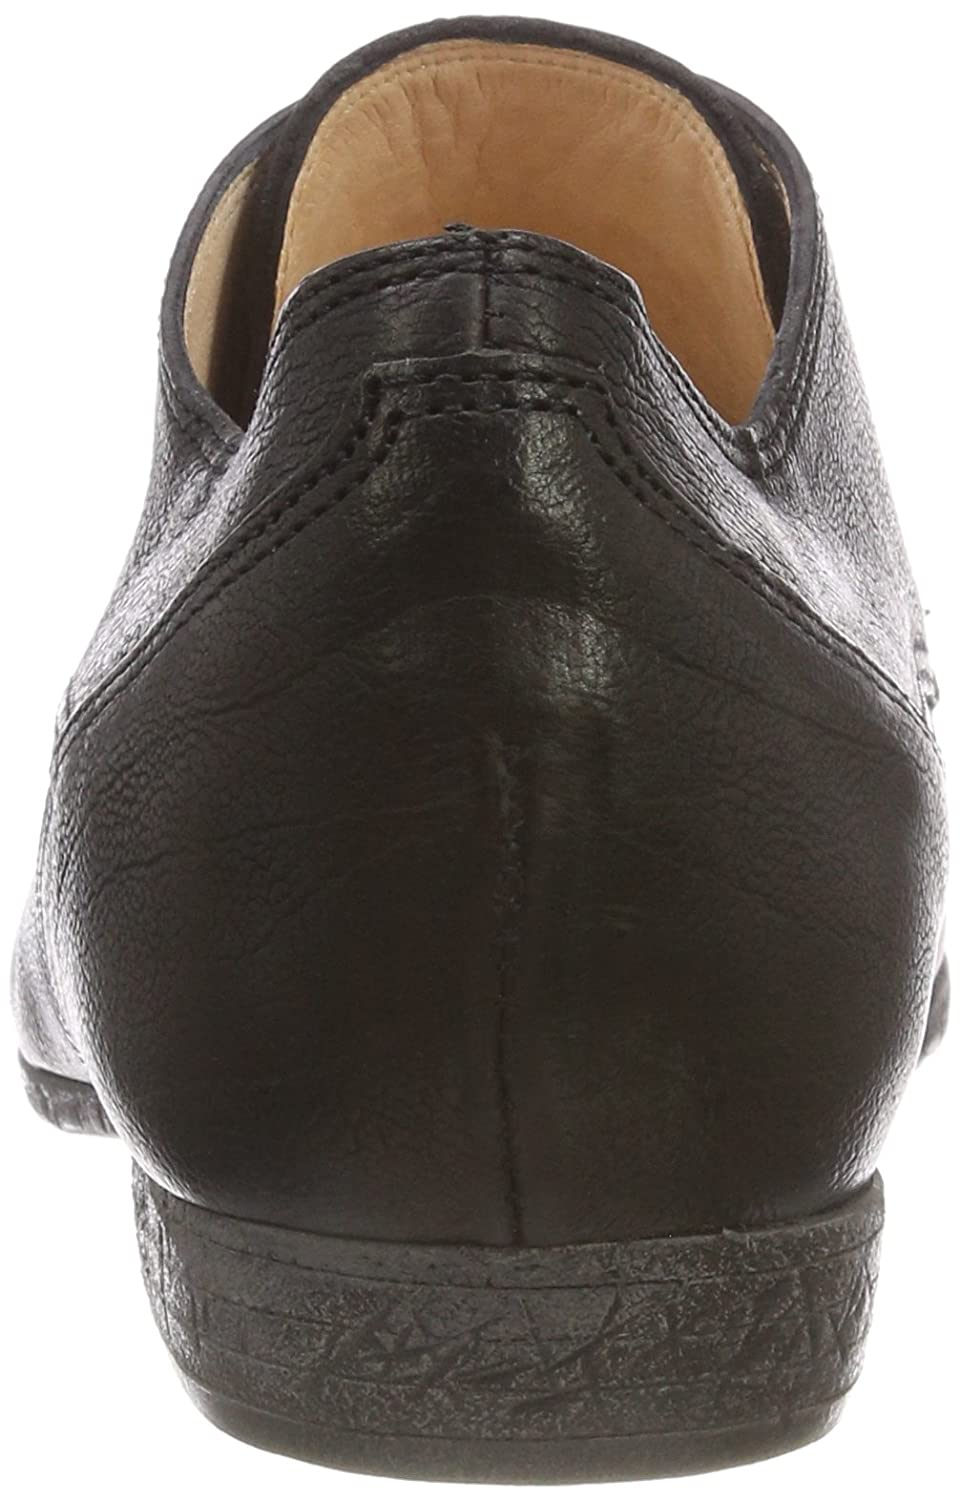 Think!! Damen Ebbs_383132 Ebbs_383132 Damen Oxfords Schwarz (09 Sz/Kombi) 6d807d